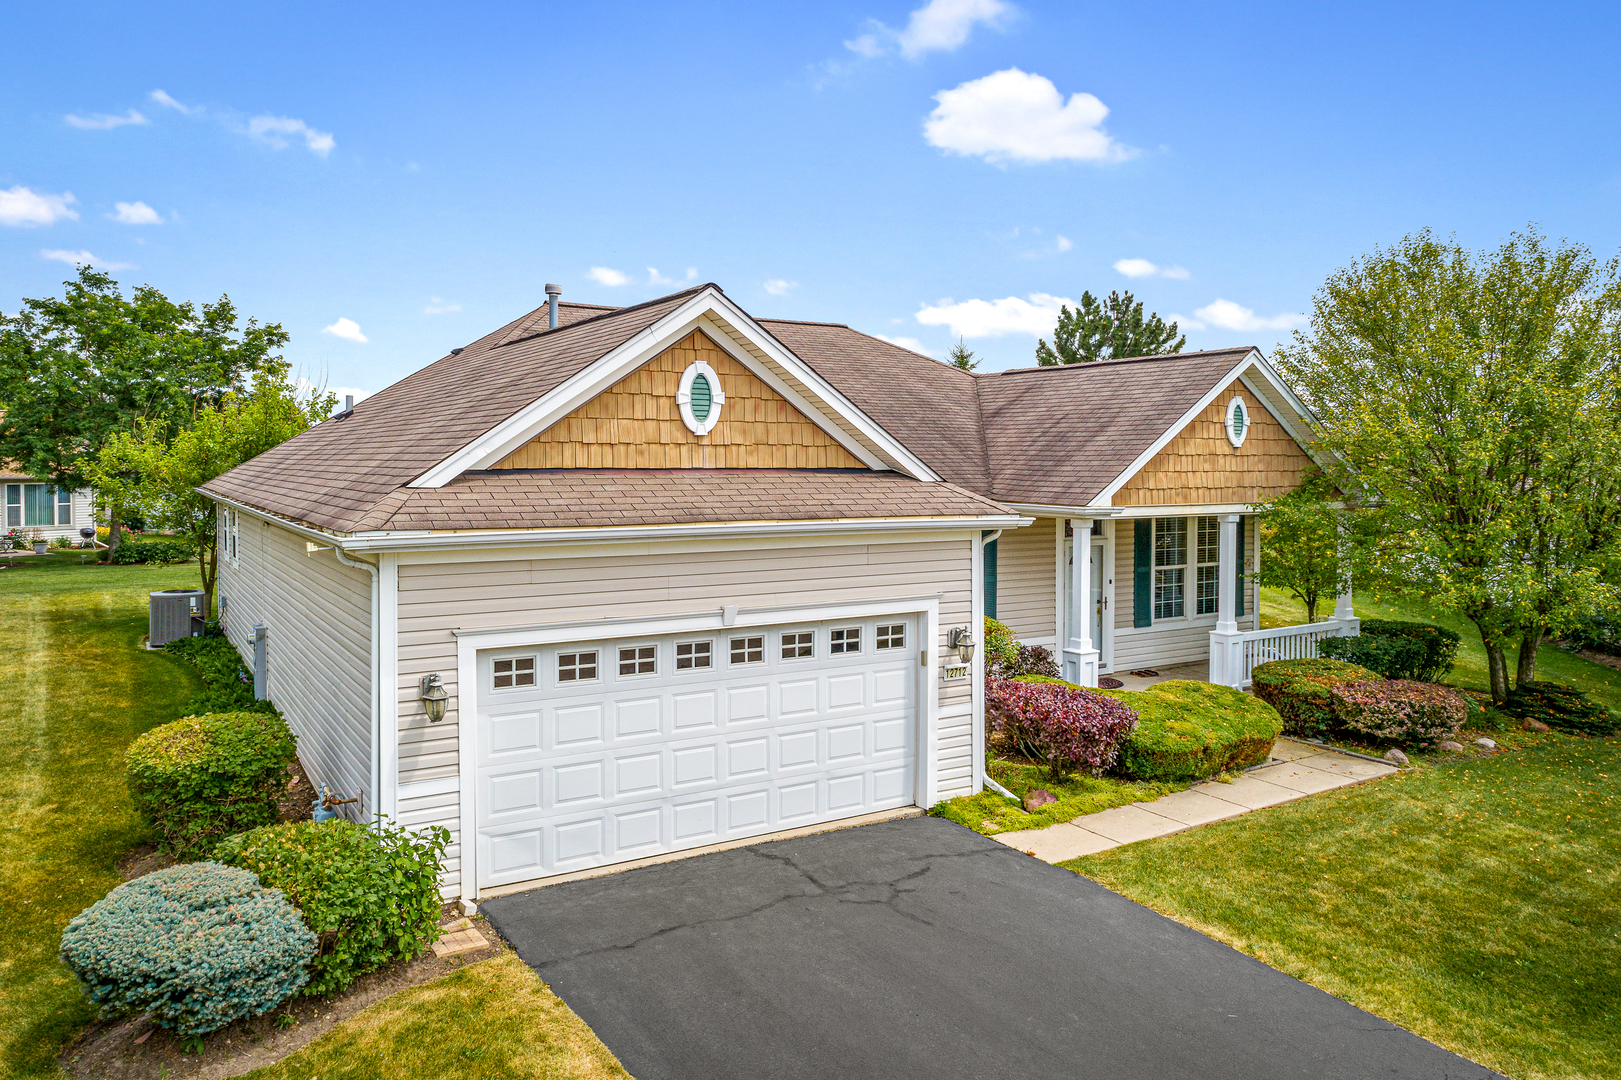 Photo for 12712 Saddle Court, HUNTLEY, IL 60142 (MLS # 10455166)